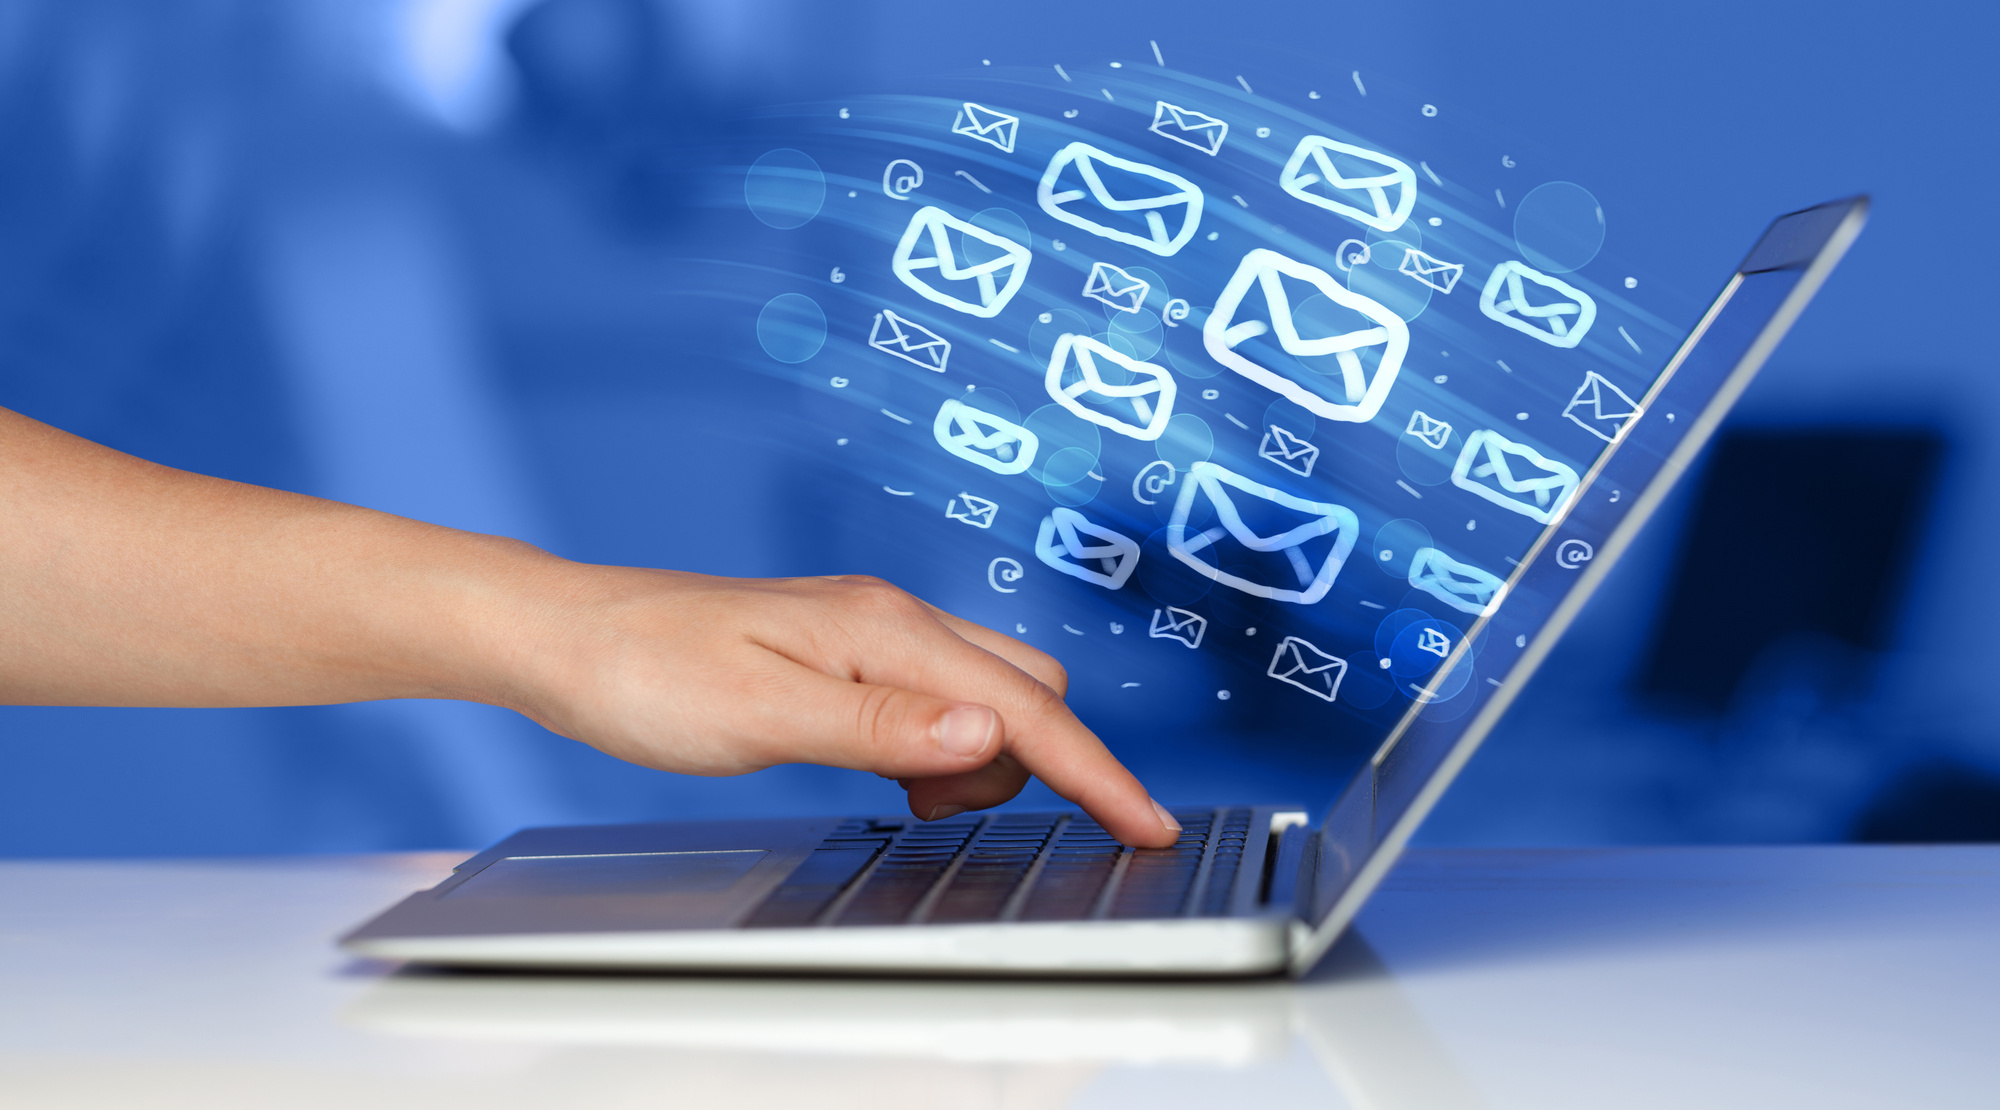 Is Email Marketing Effective? A Guide for Businesses